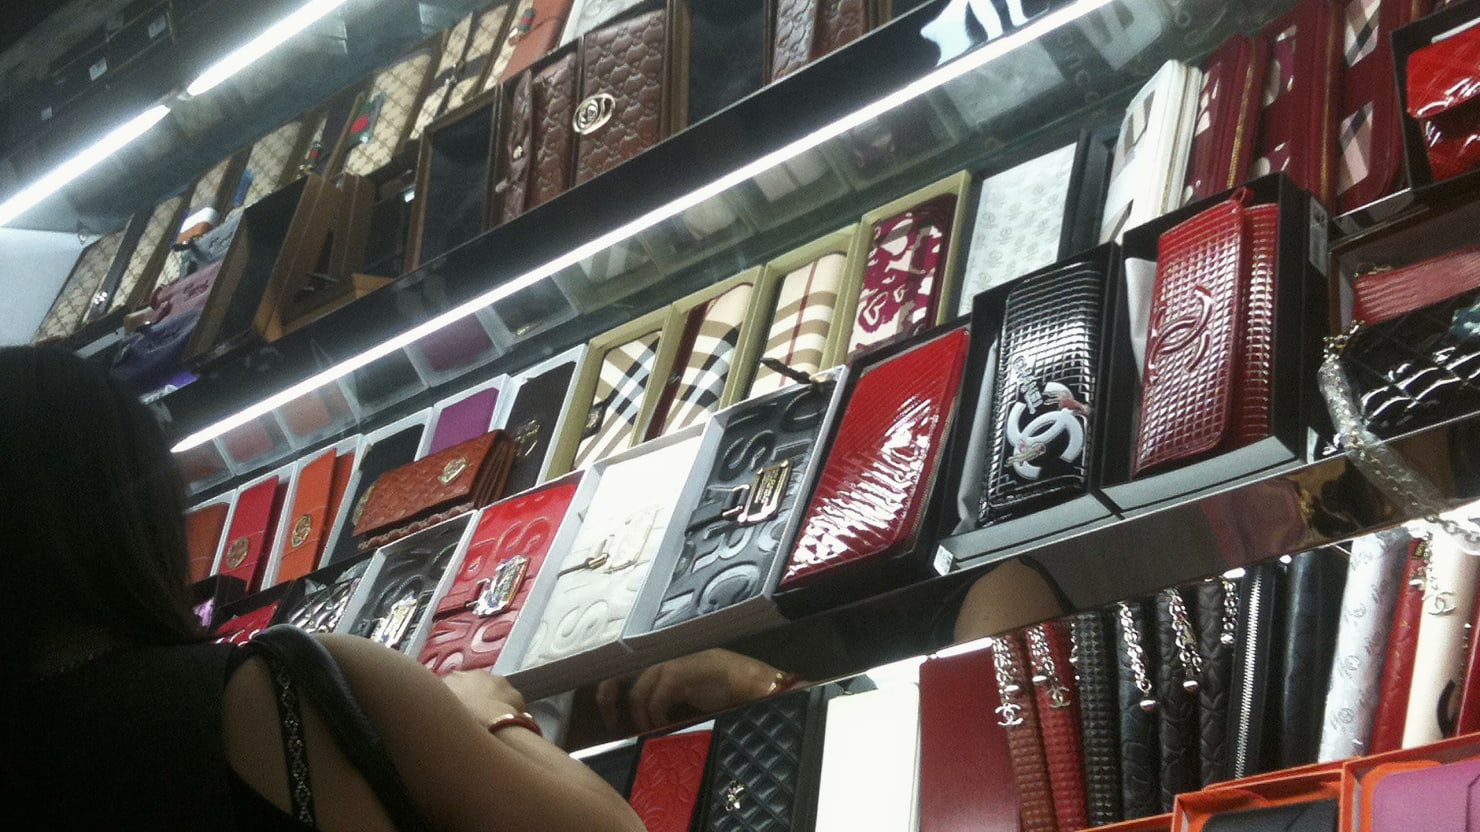 Best place to buy replica watches - The U S Tells You Where To Buy The Best Fake Designer Handbags Pirated Movies And More